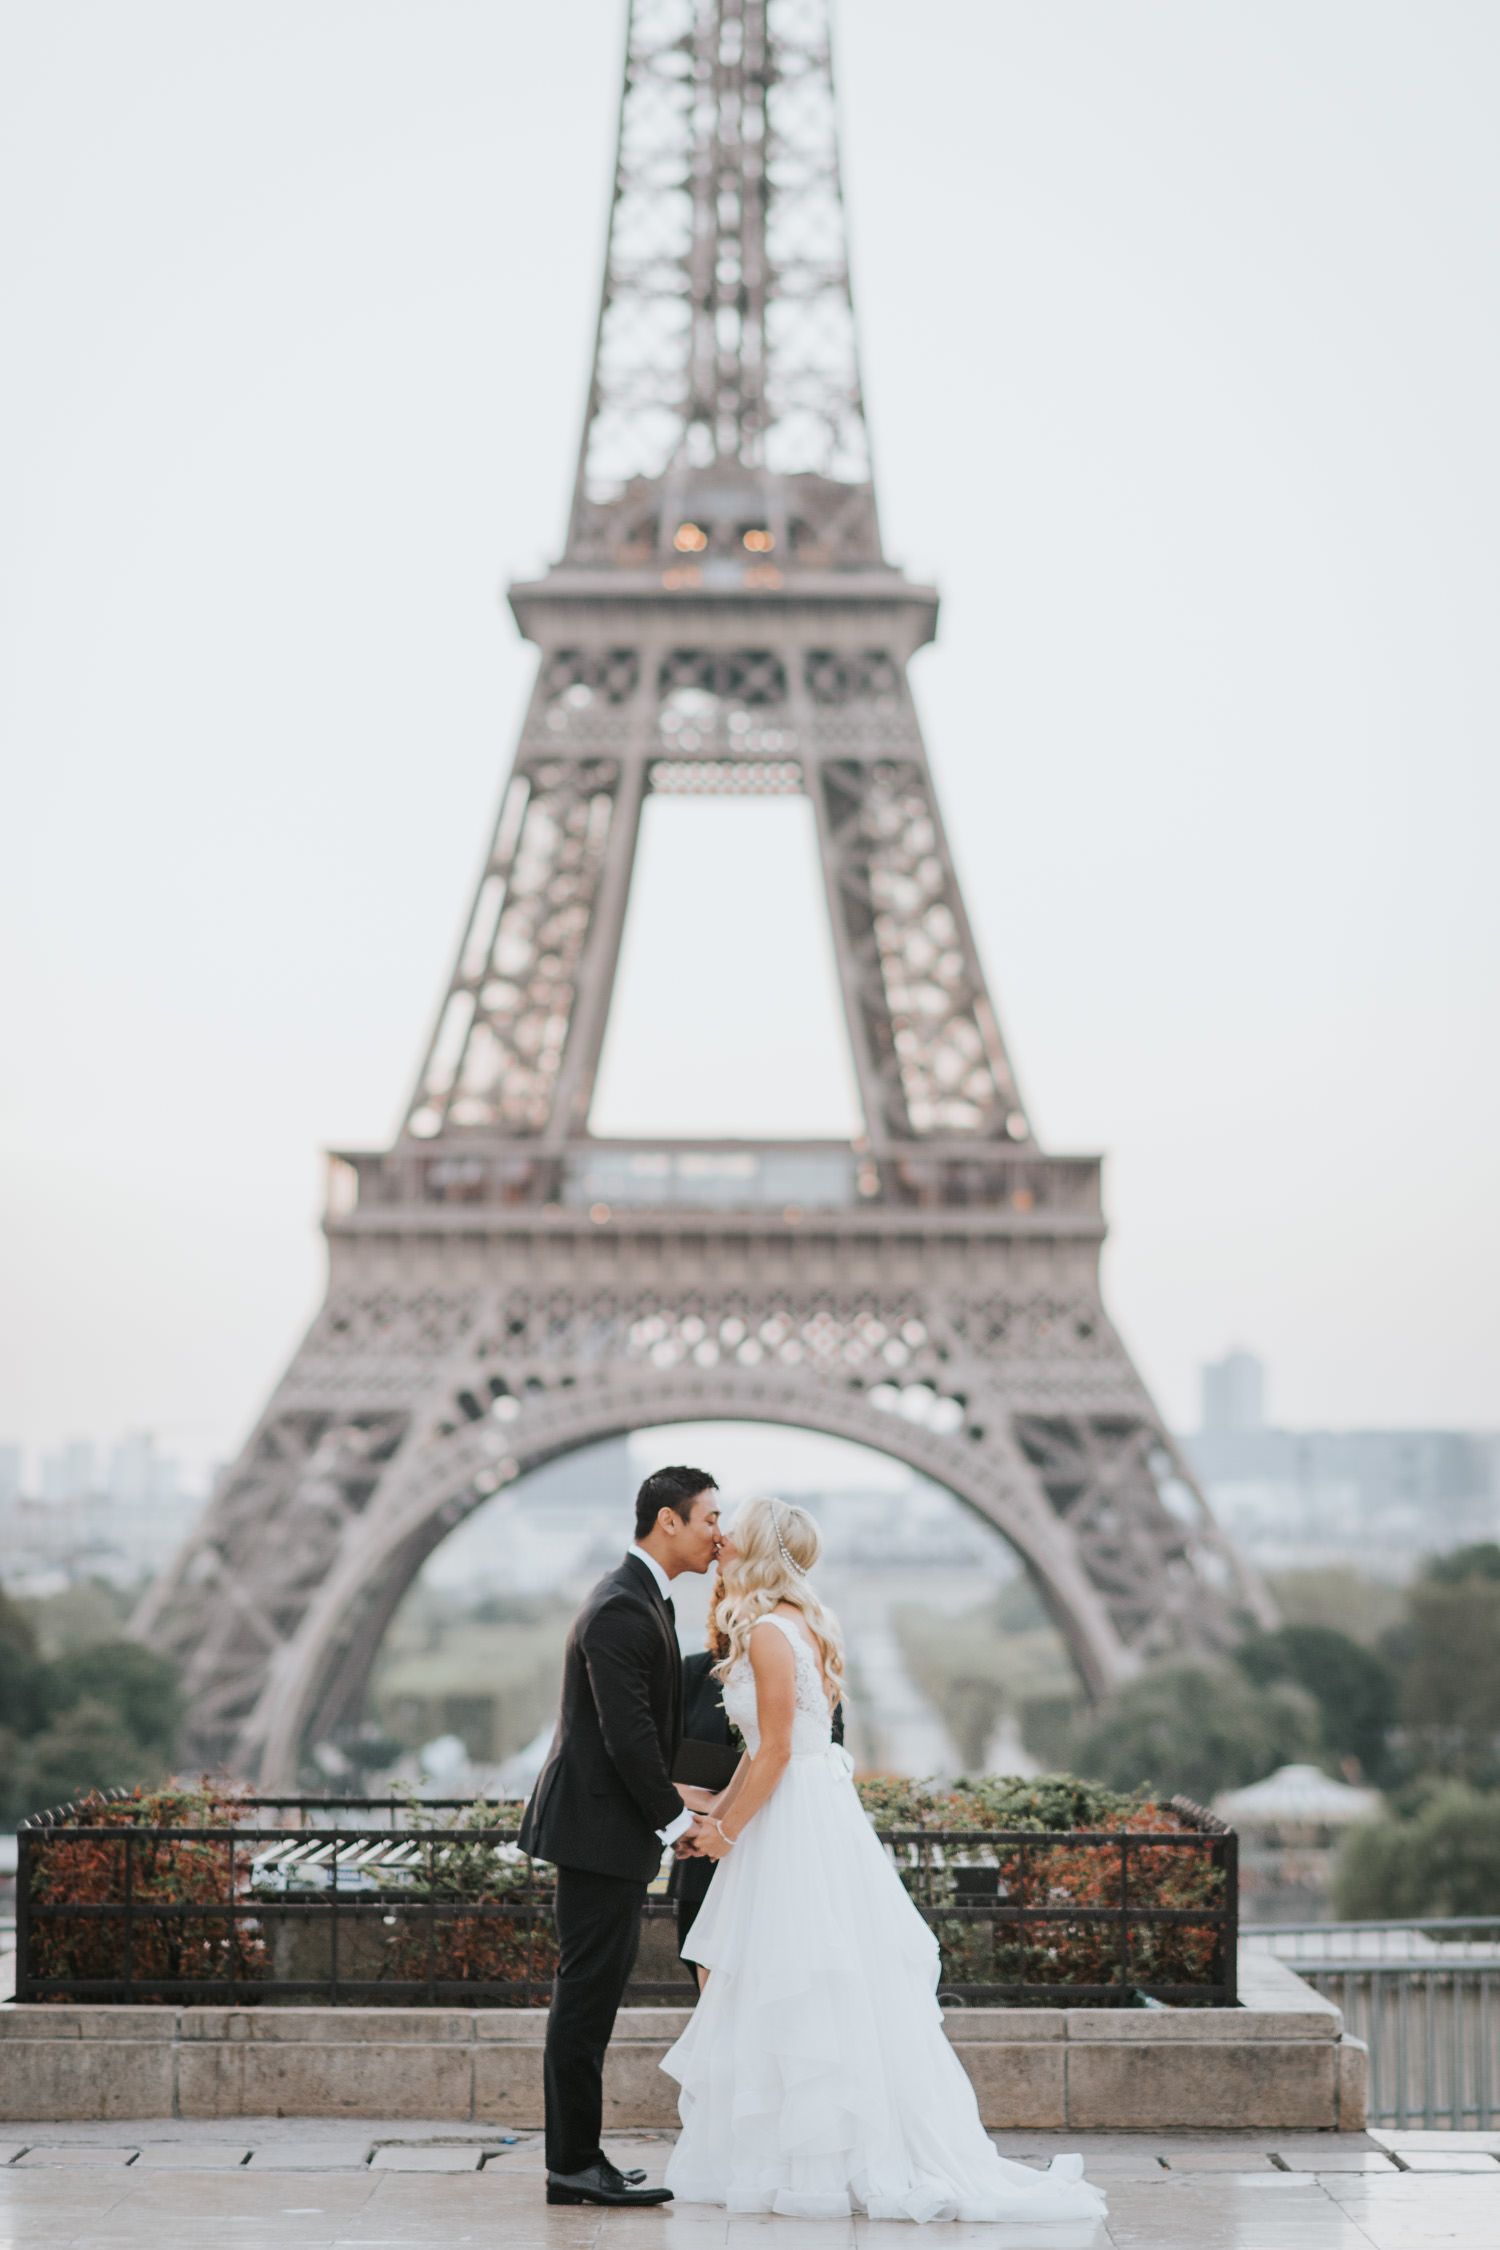 Elopement cermeony in front of eiffel tower